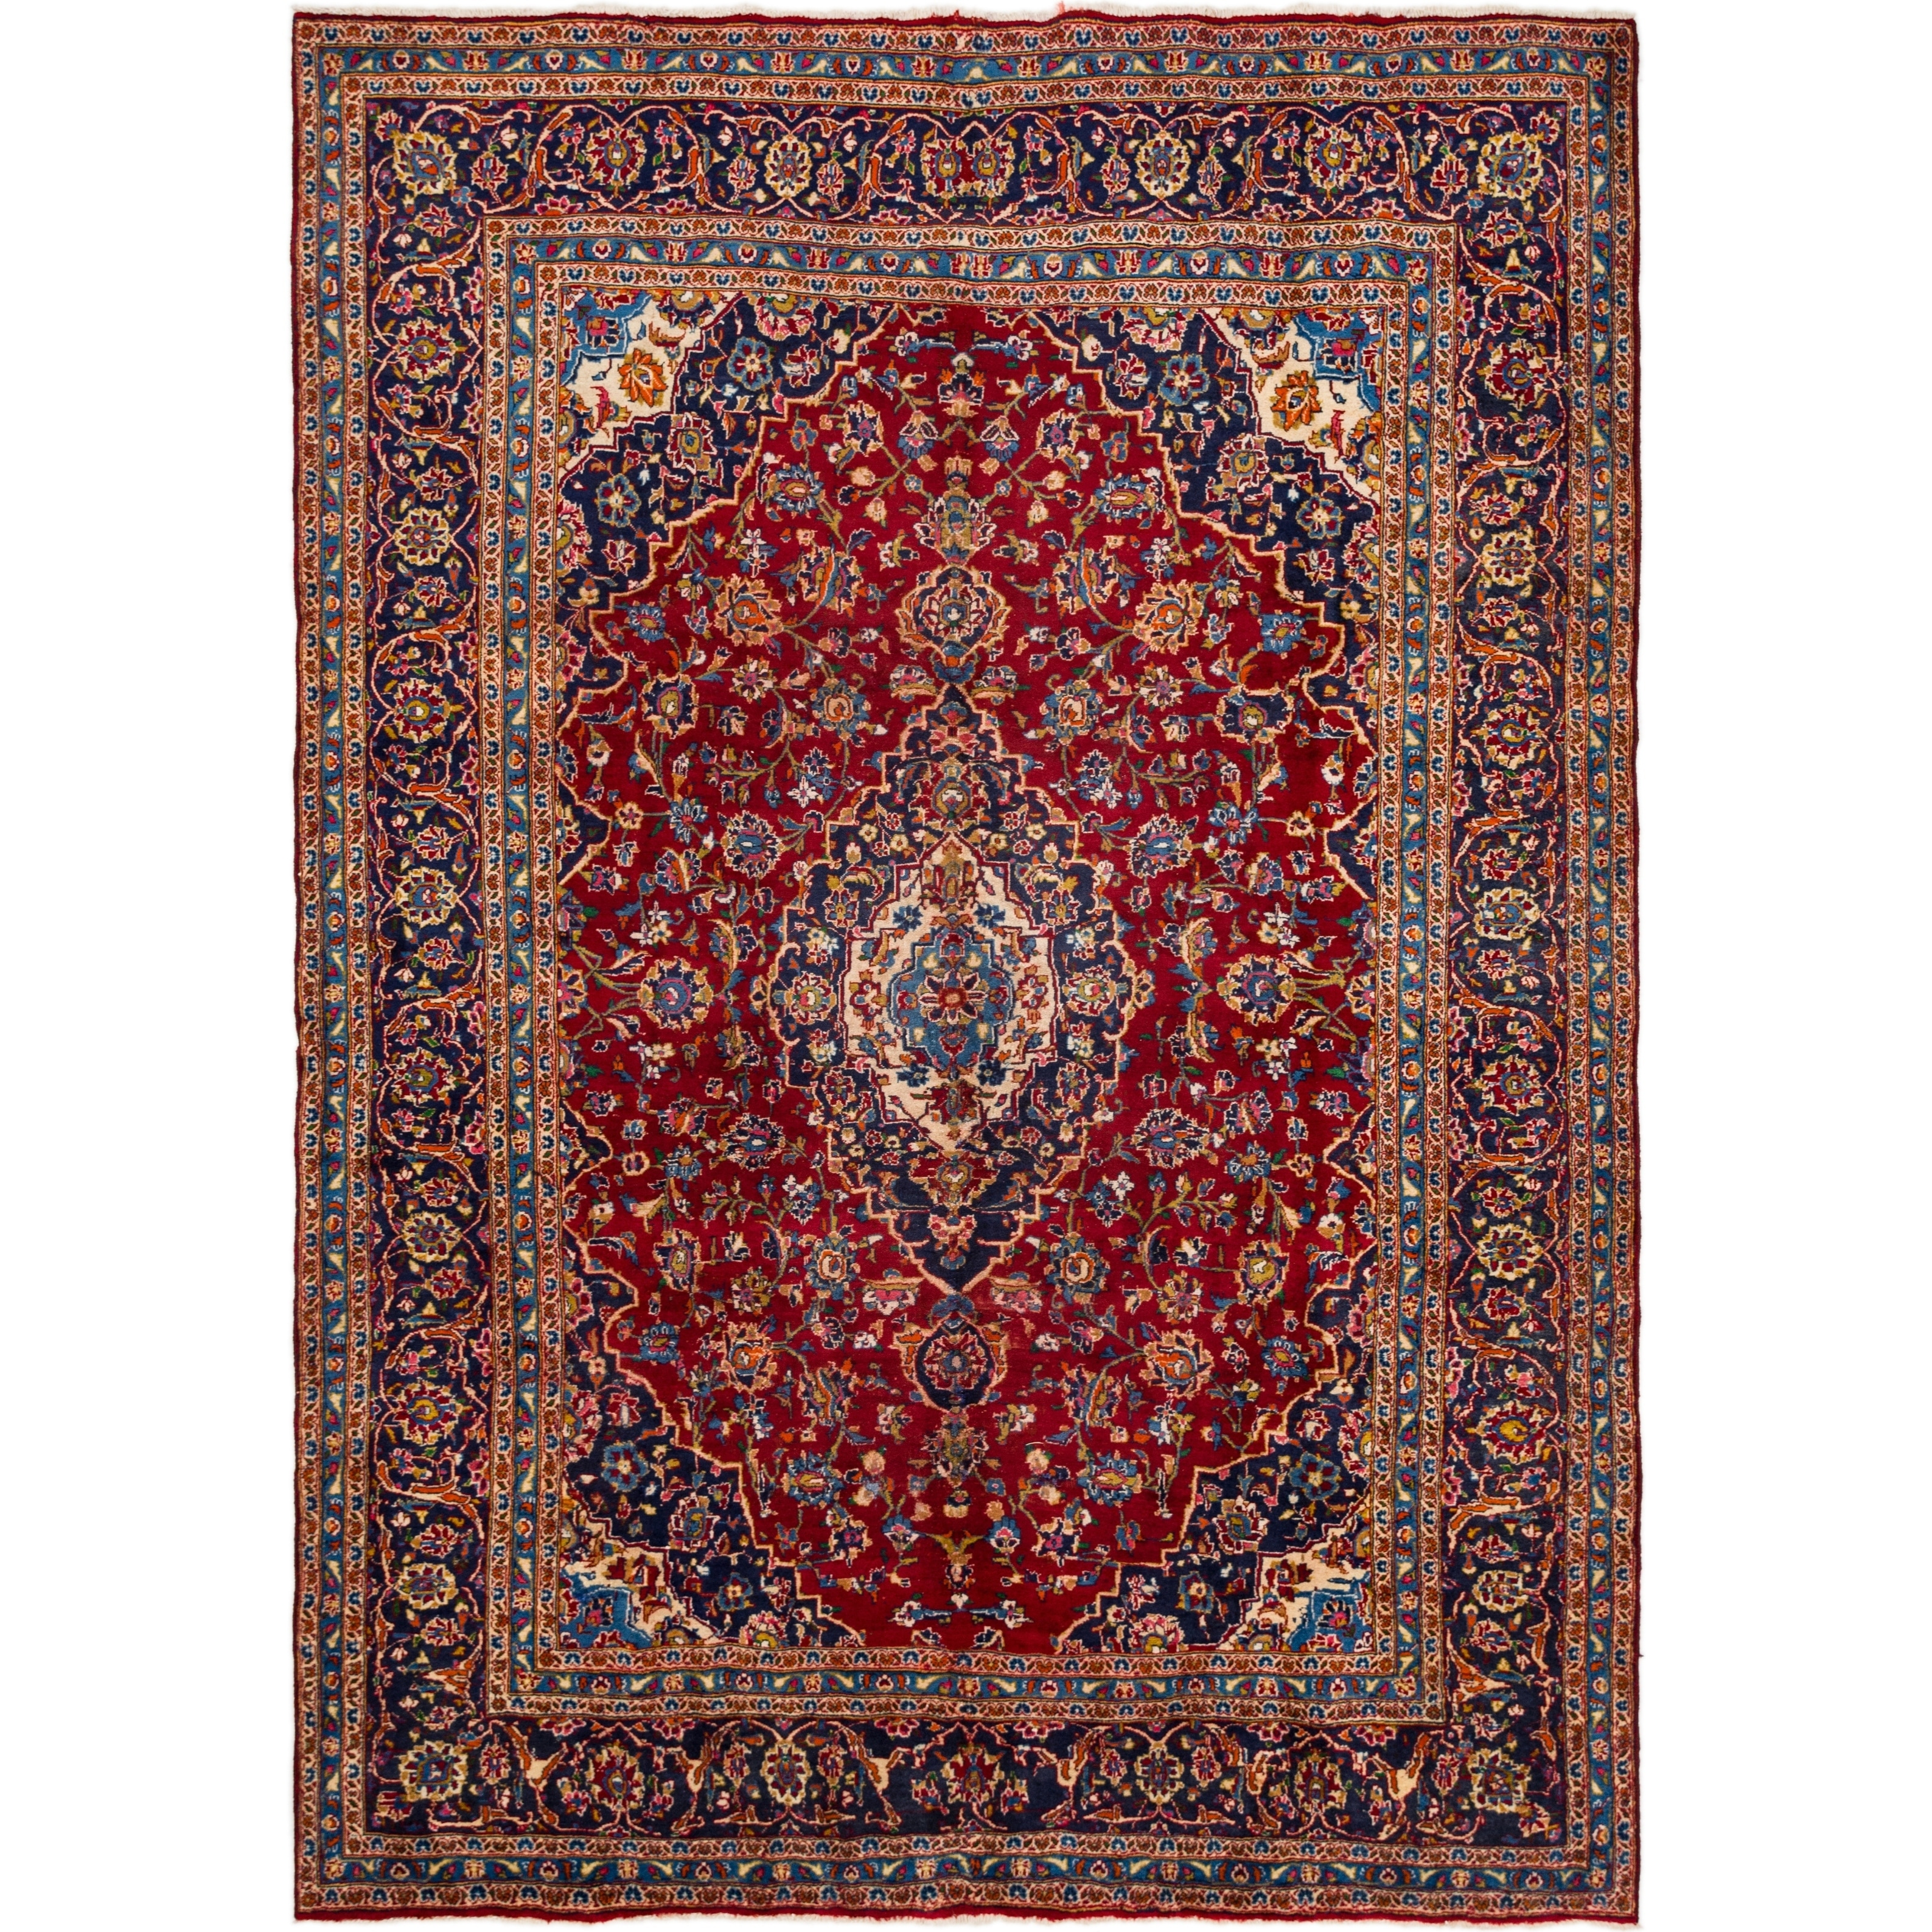 Hand Knotted Kashan Semi Antique Wool Area Rug - 8 2 x 11 5 (Red - 8 2 x 11 5)